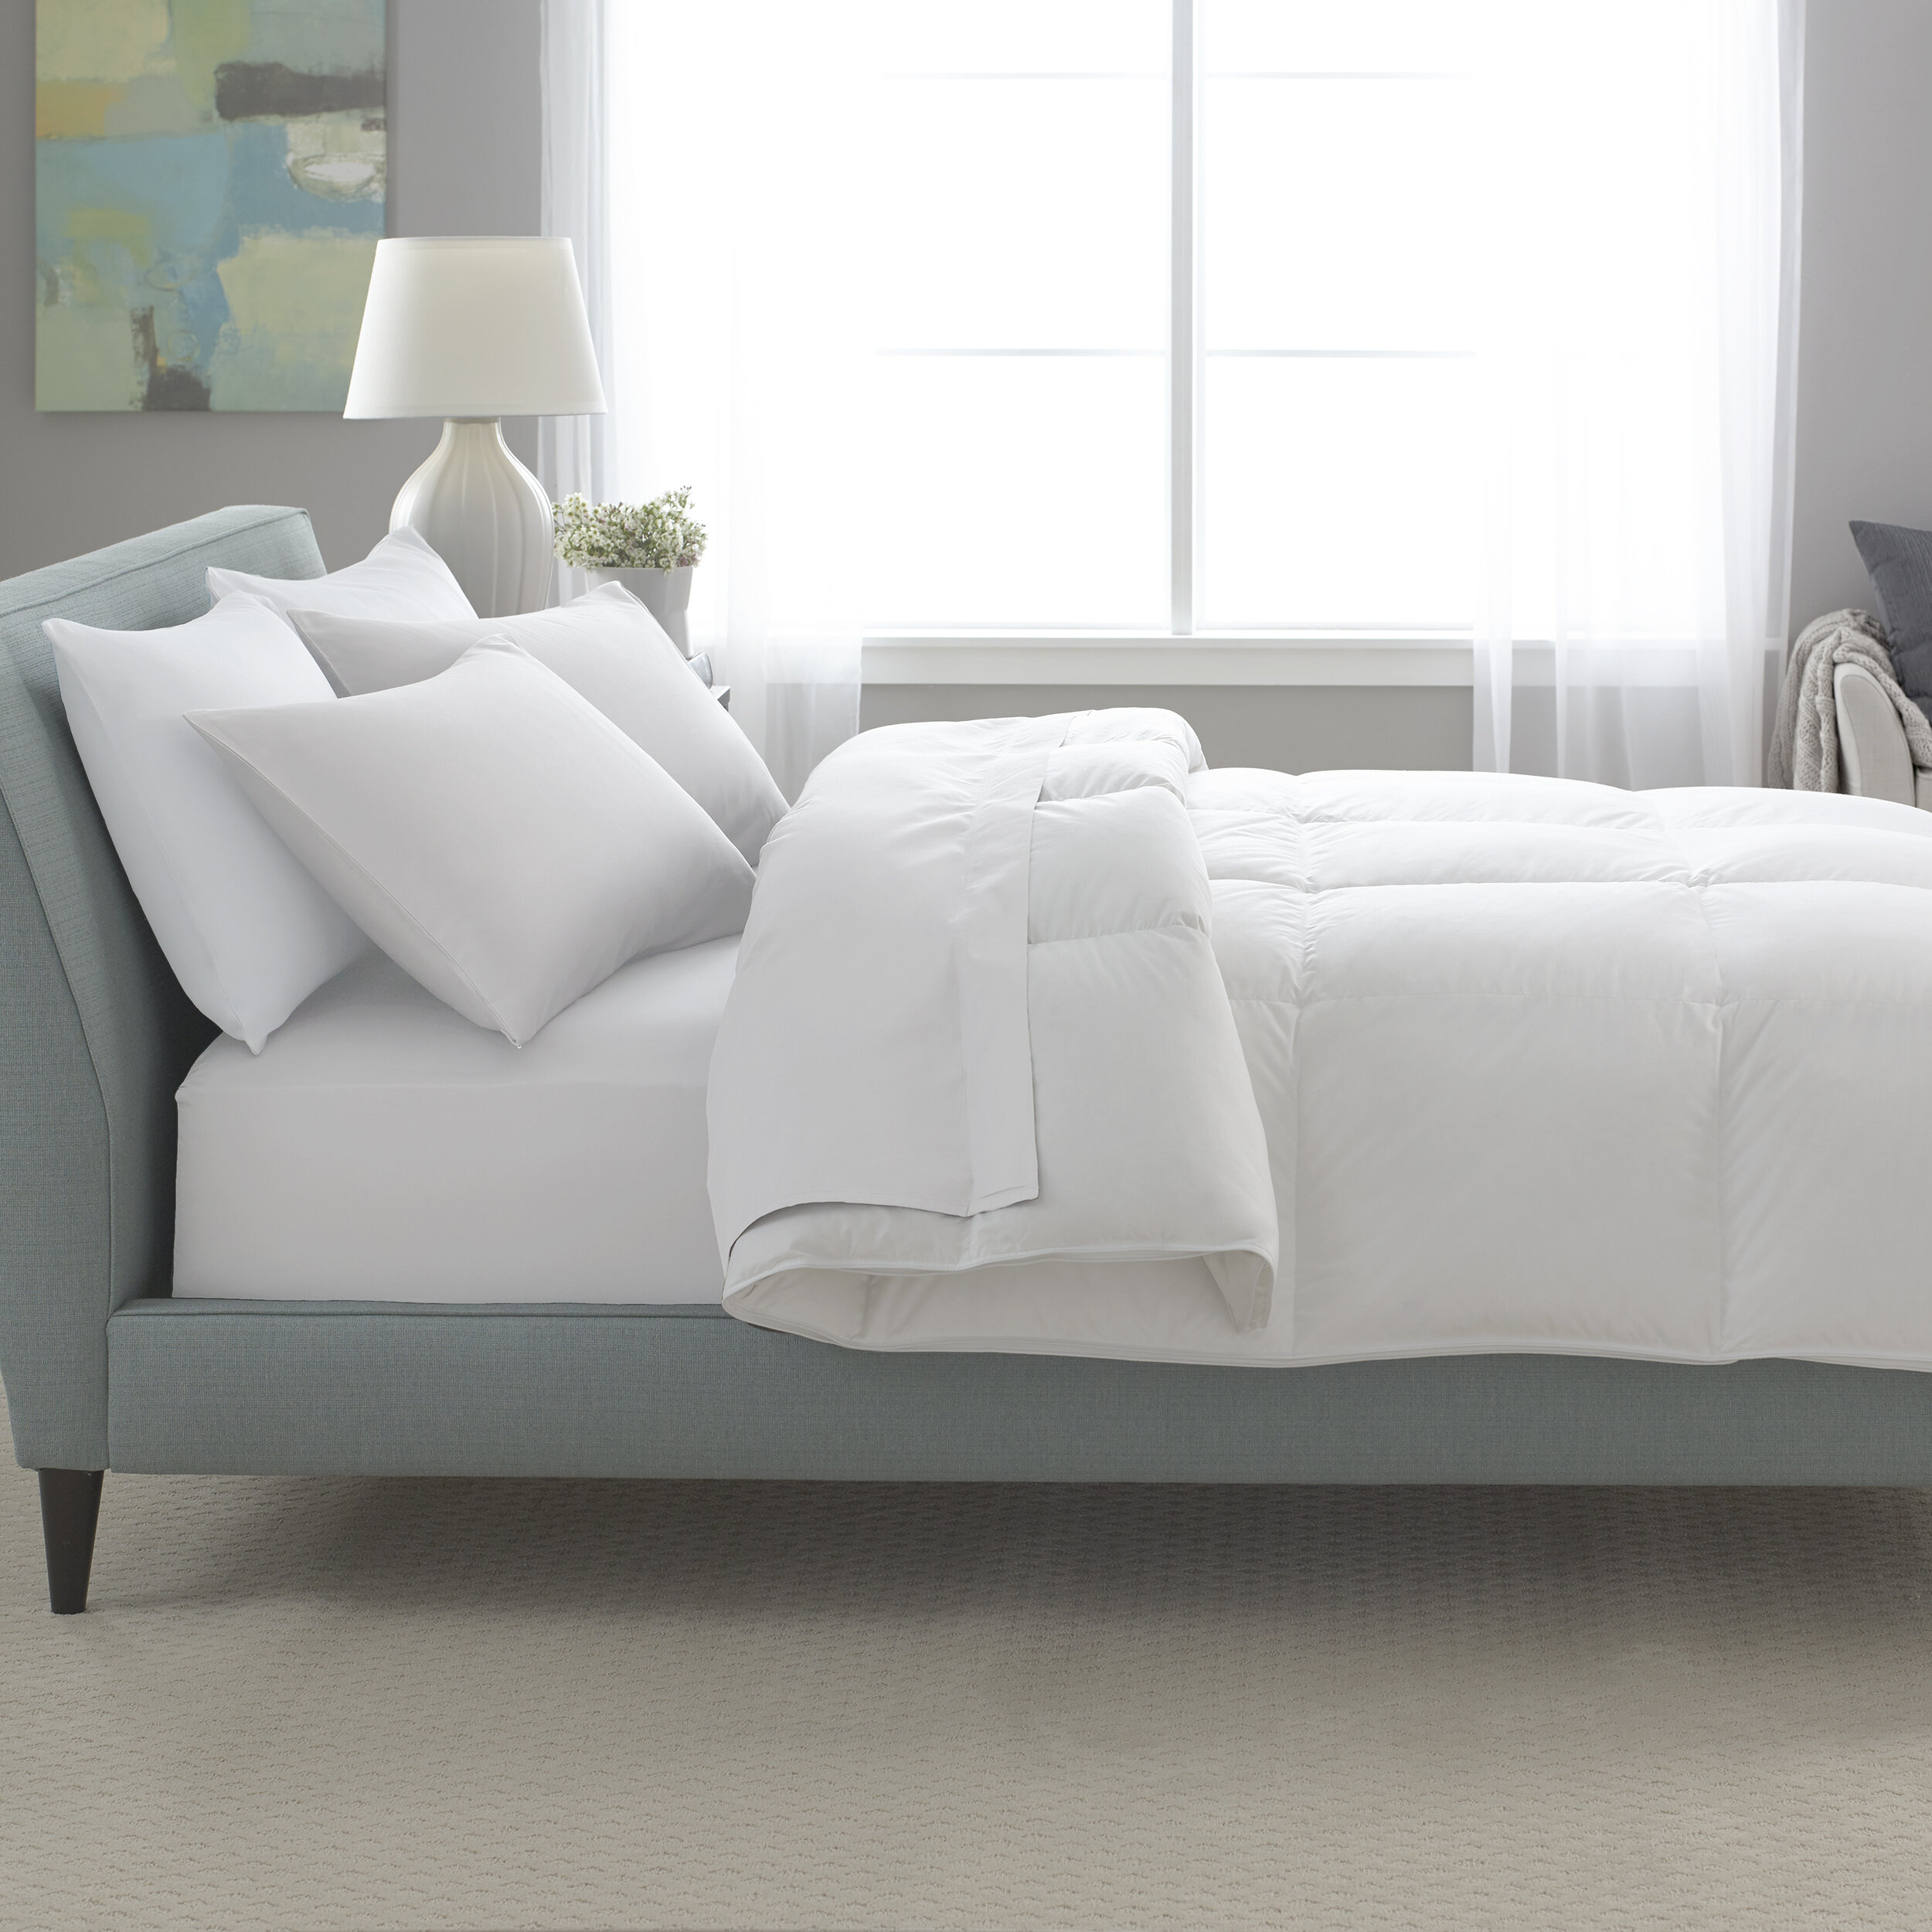 Arsuite All Season Polyester Down Alternative Comforter Wayfair